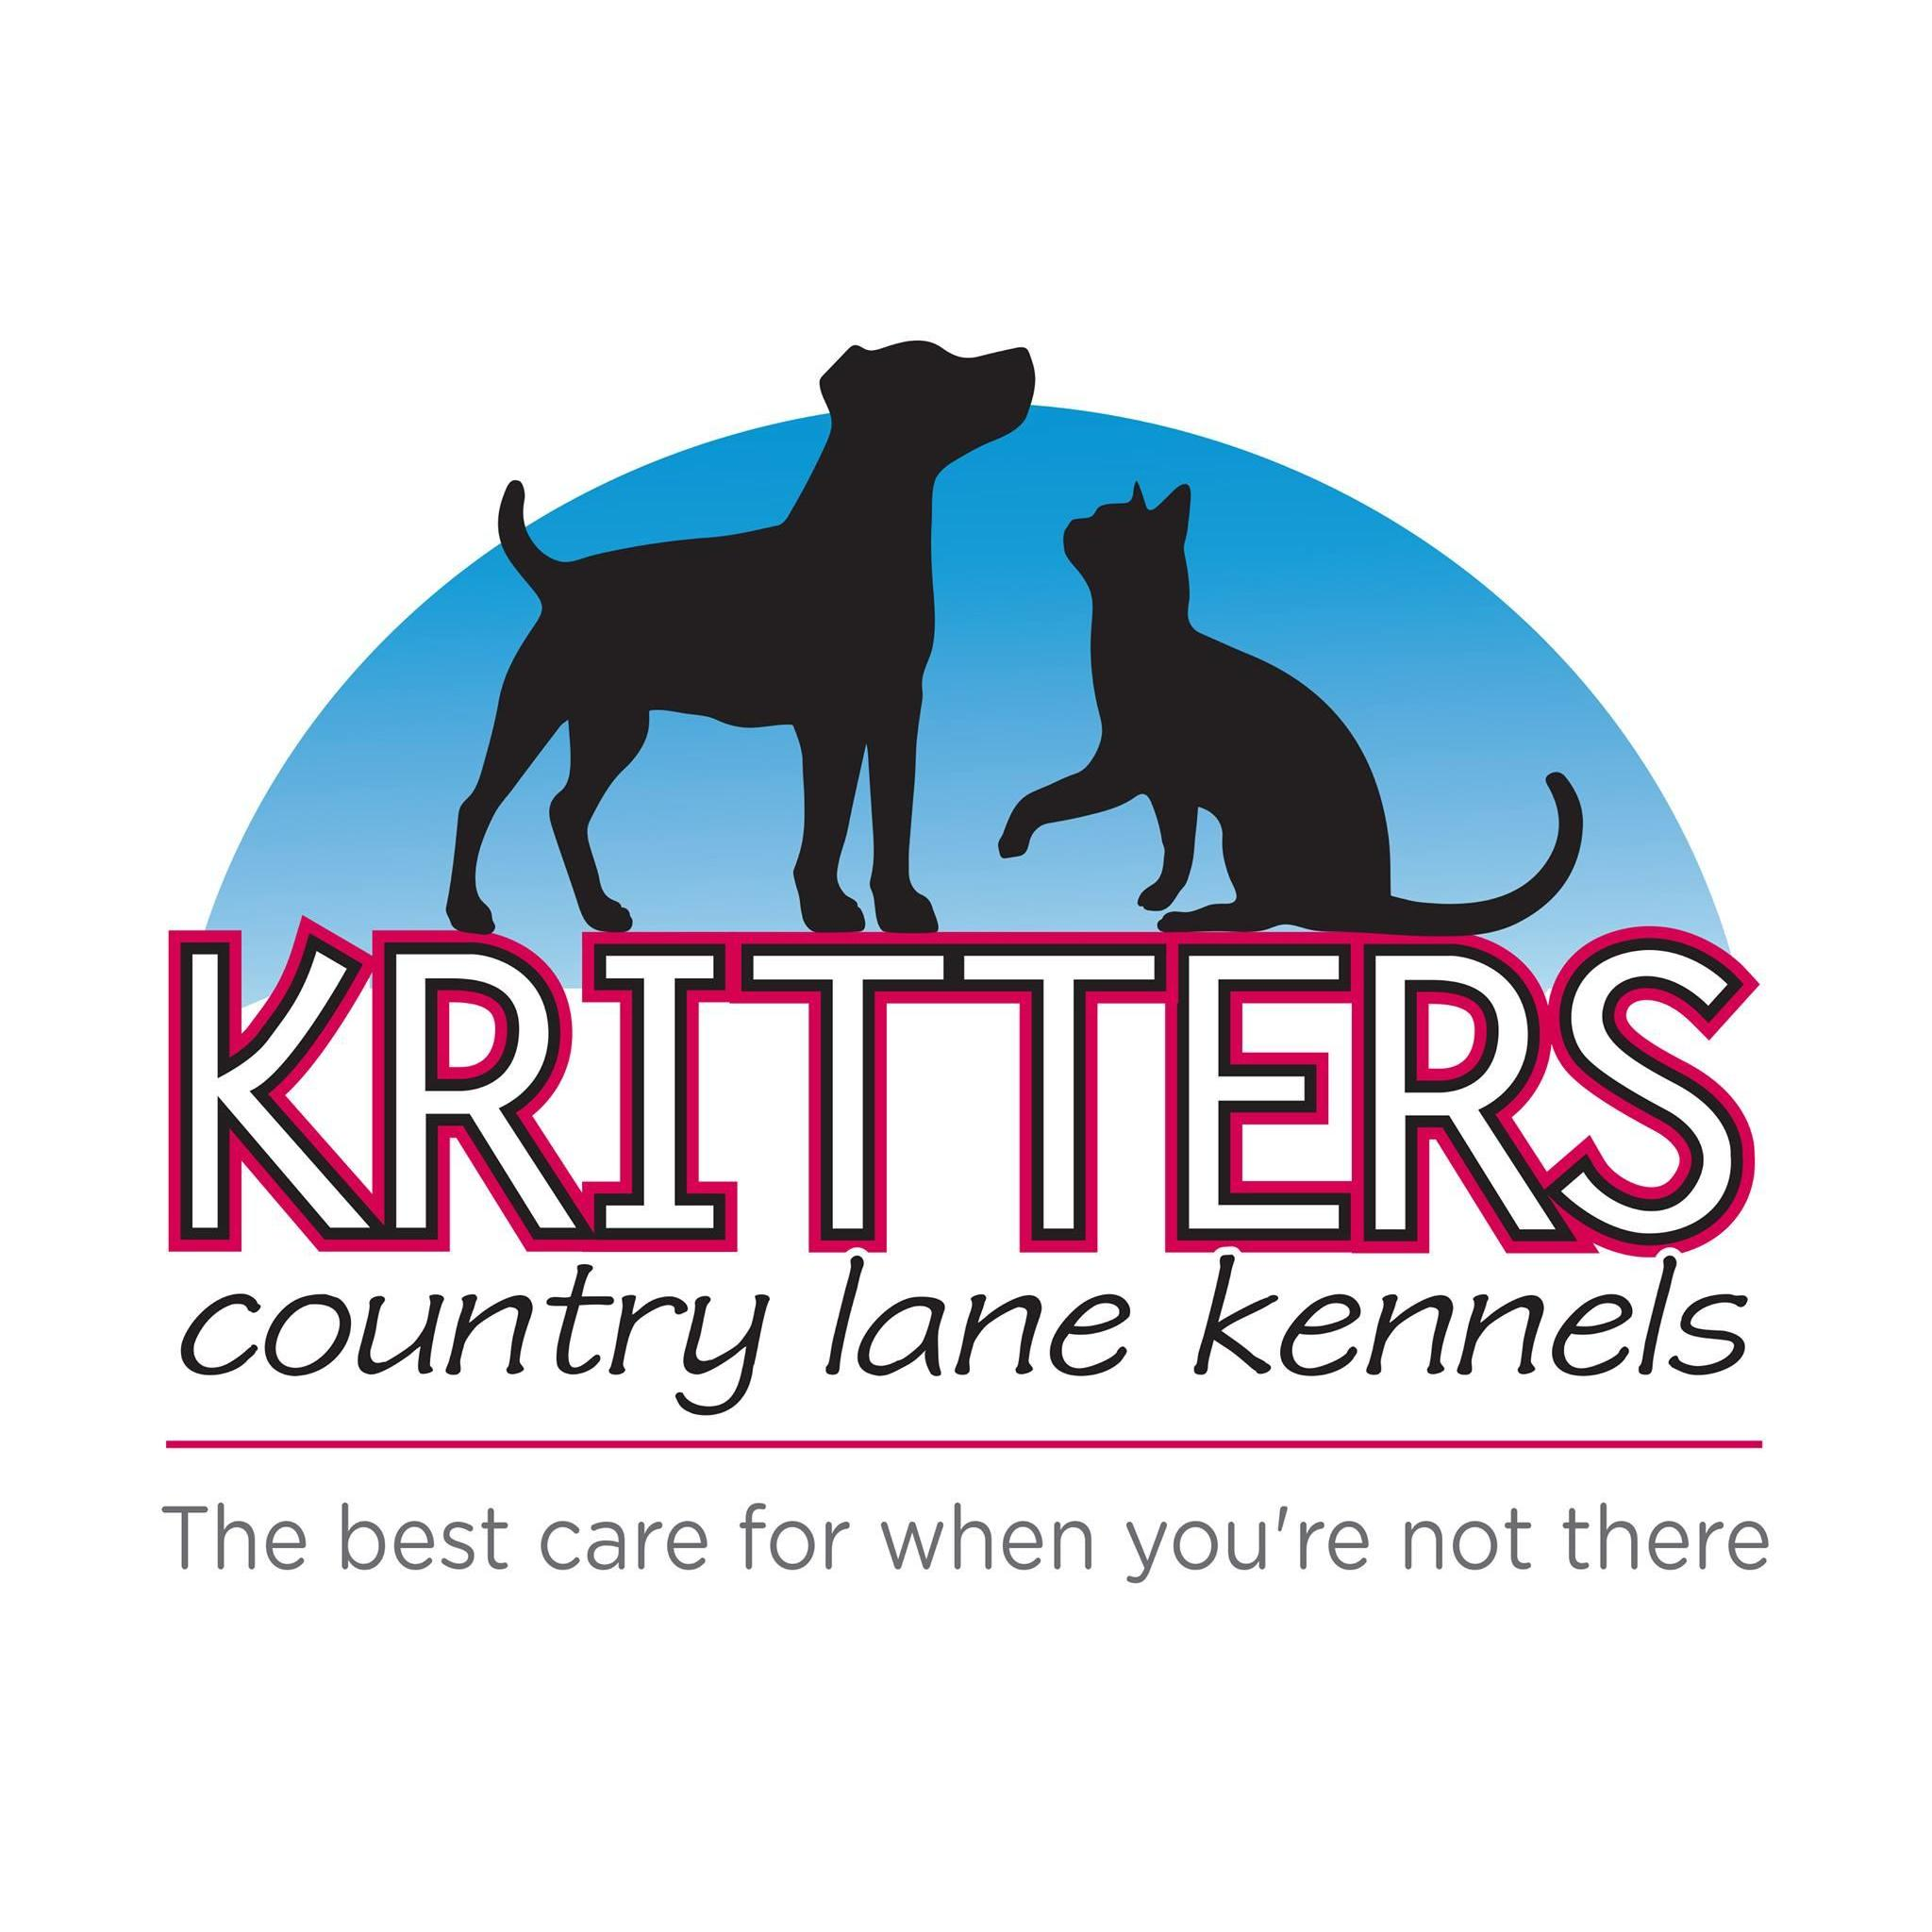 Kritters Country Lane Kennels image 5